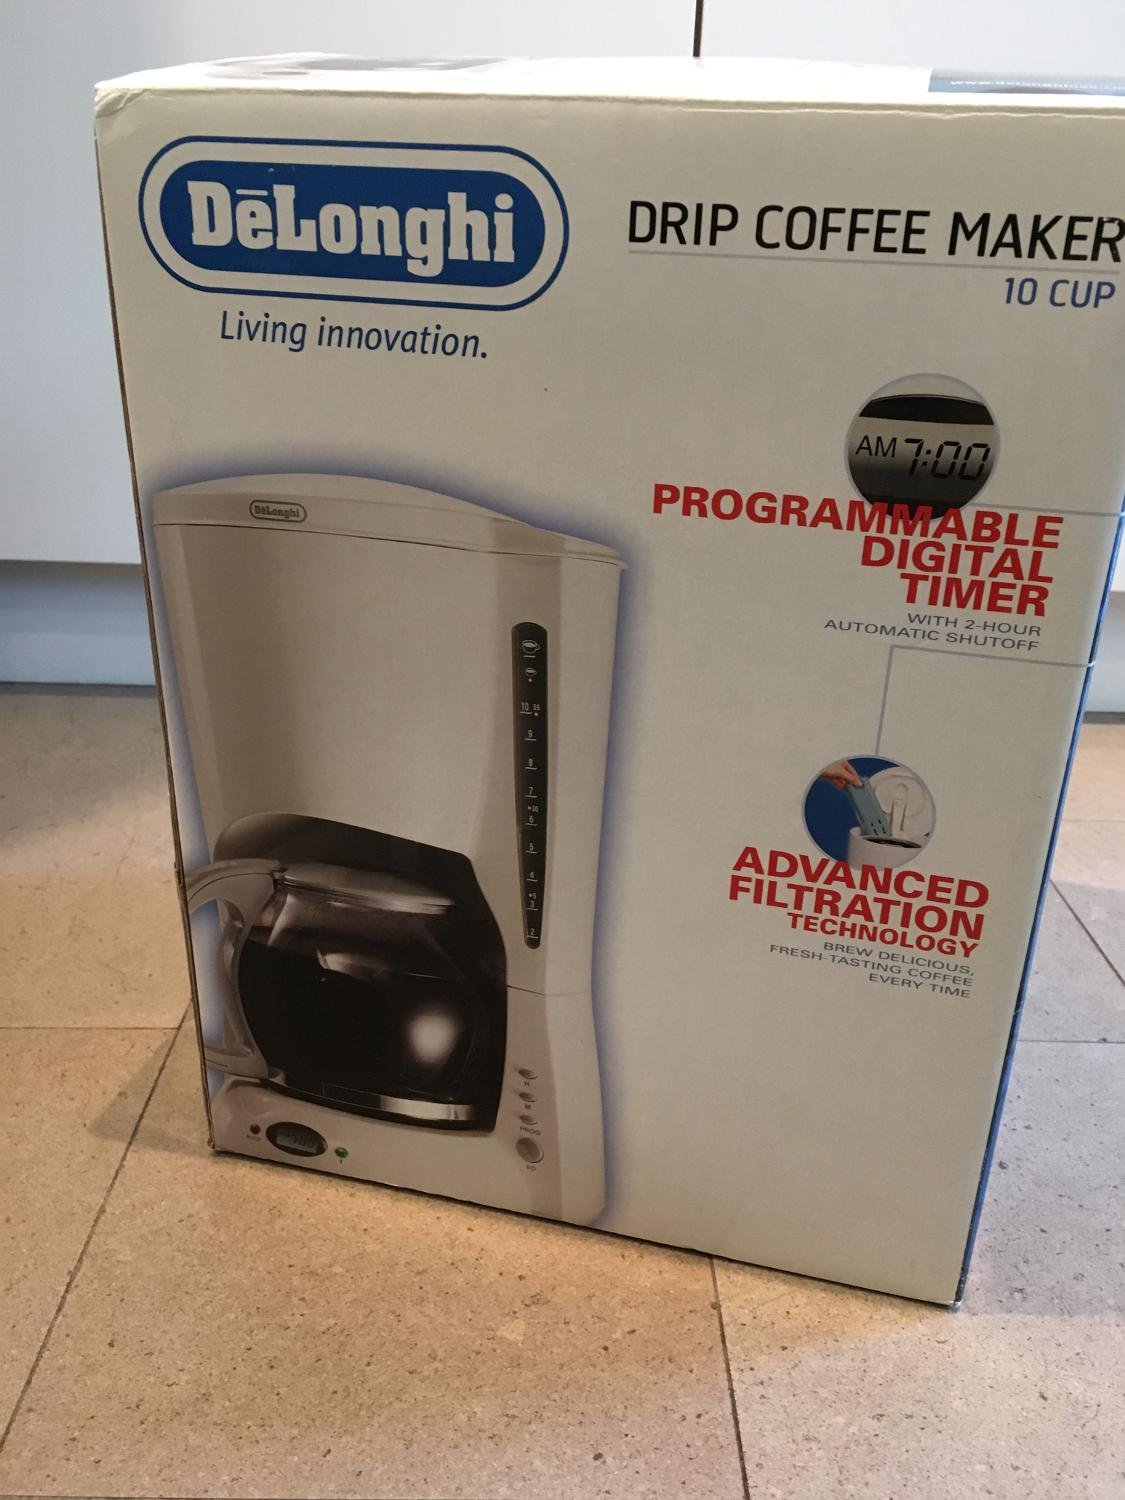 Find more Price Drop Delonghi 10 Cup Drip Coffee Maker - New In Box for sale at up to 90% off ...